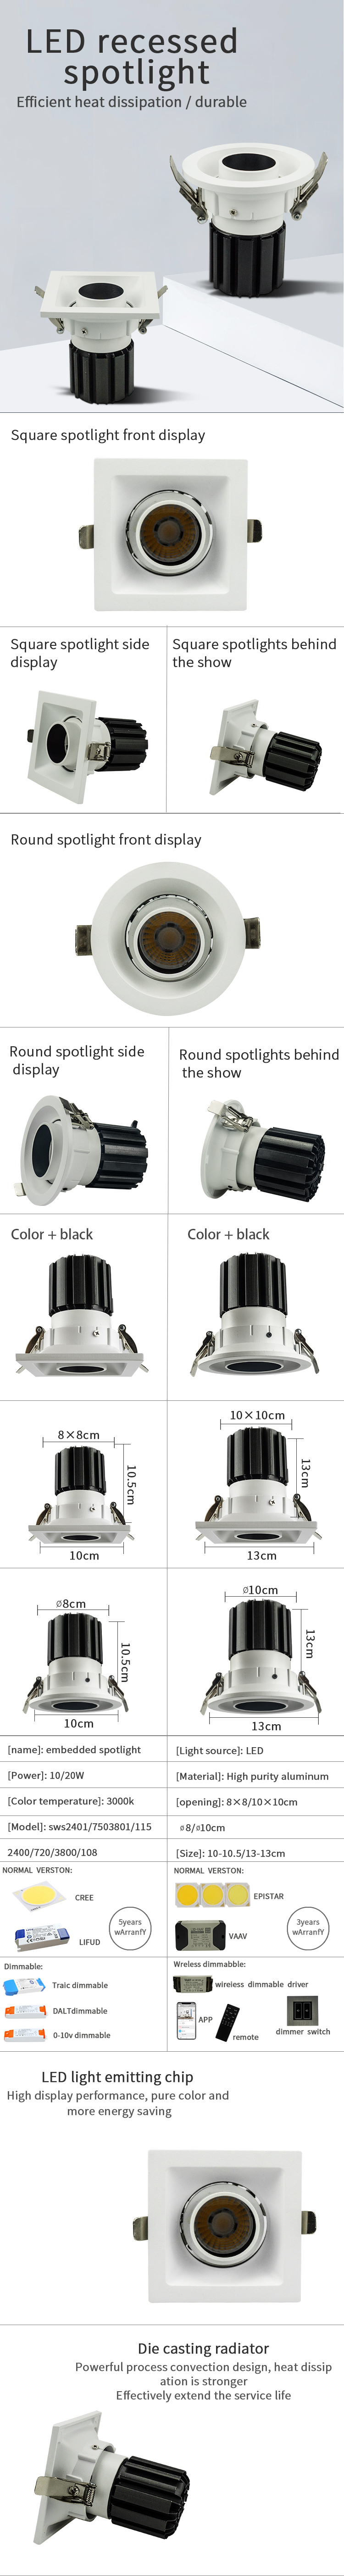 Wholesale downlight kit adjustable 10w 20w led recessed downlights